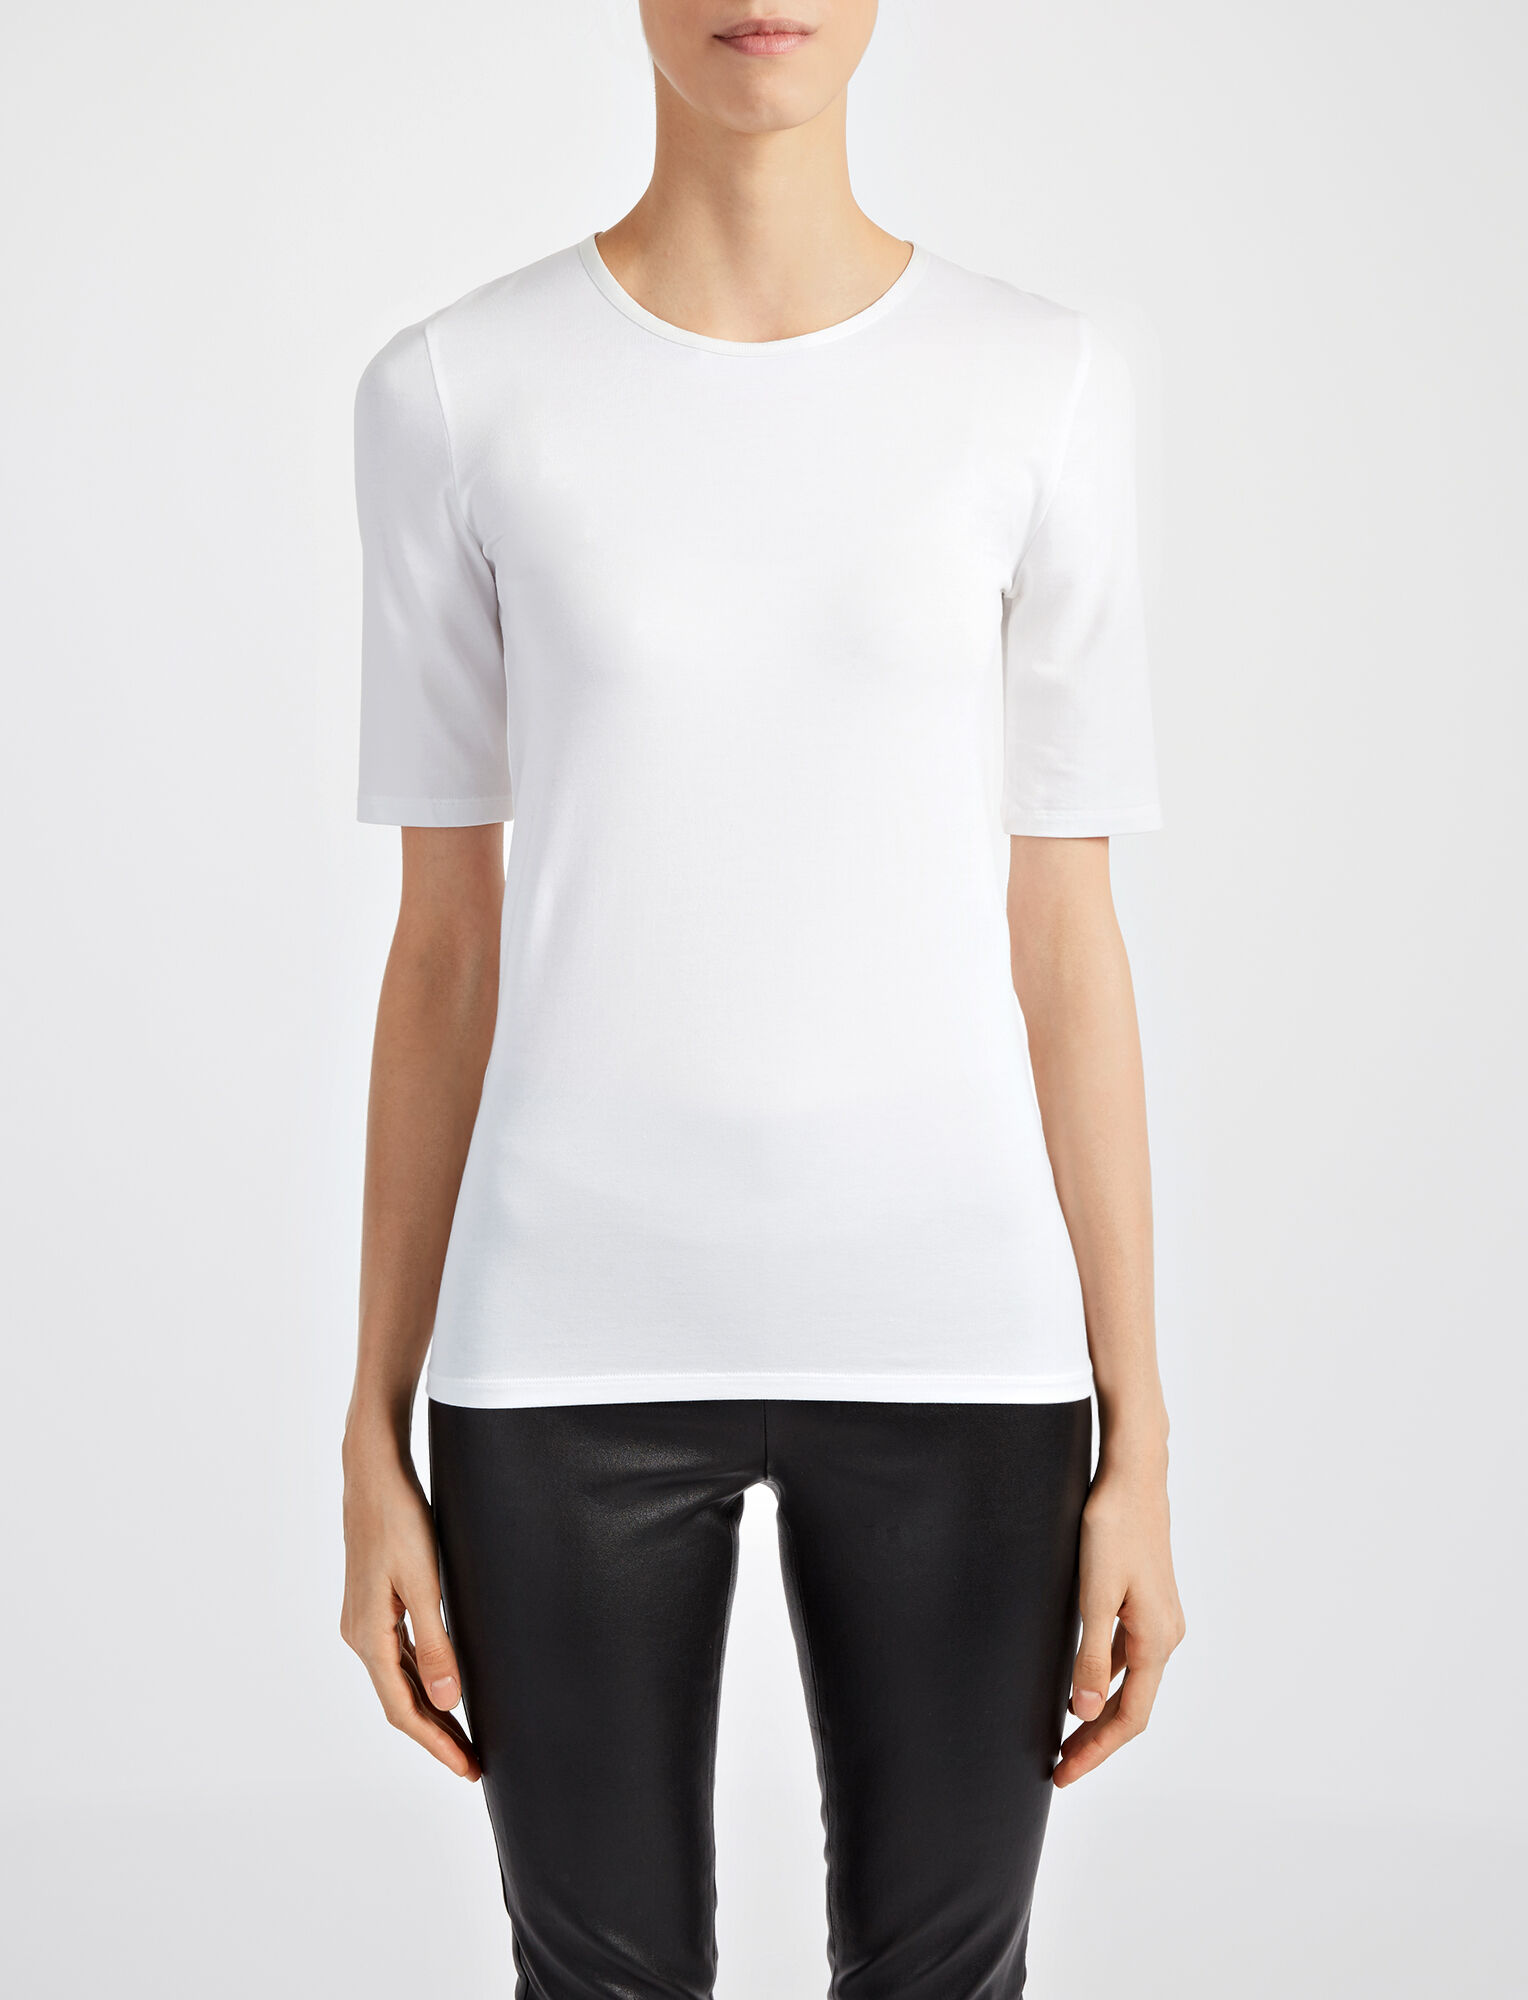 Joseph, Haut en coton et lyocell stretch, in OFF WHITE